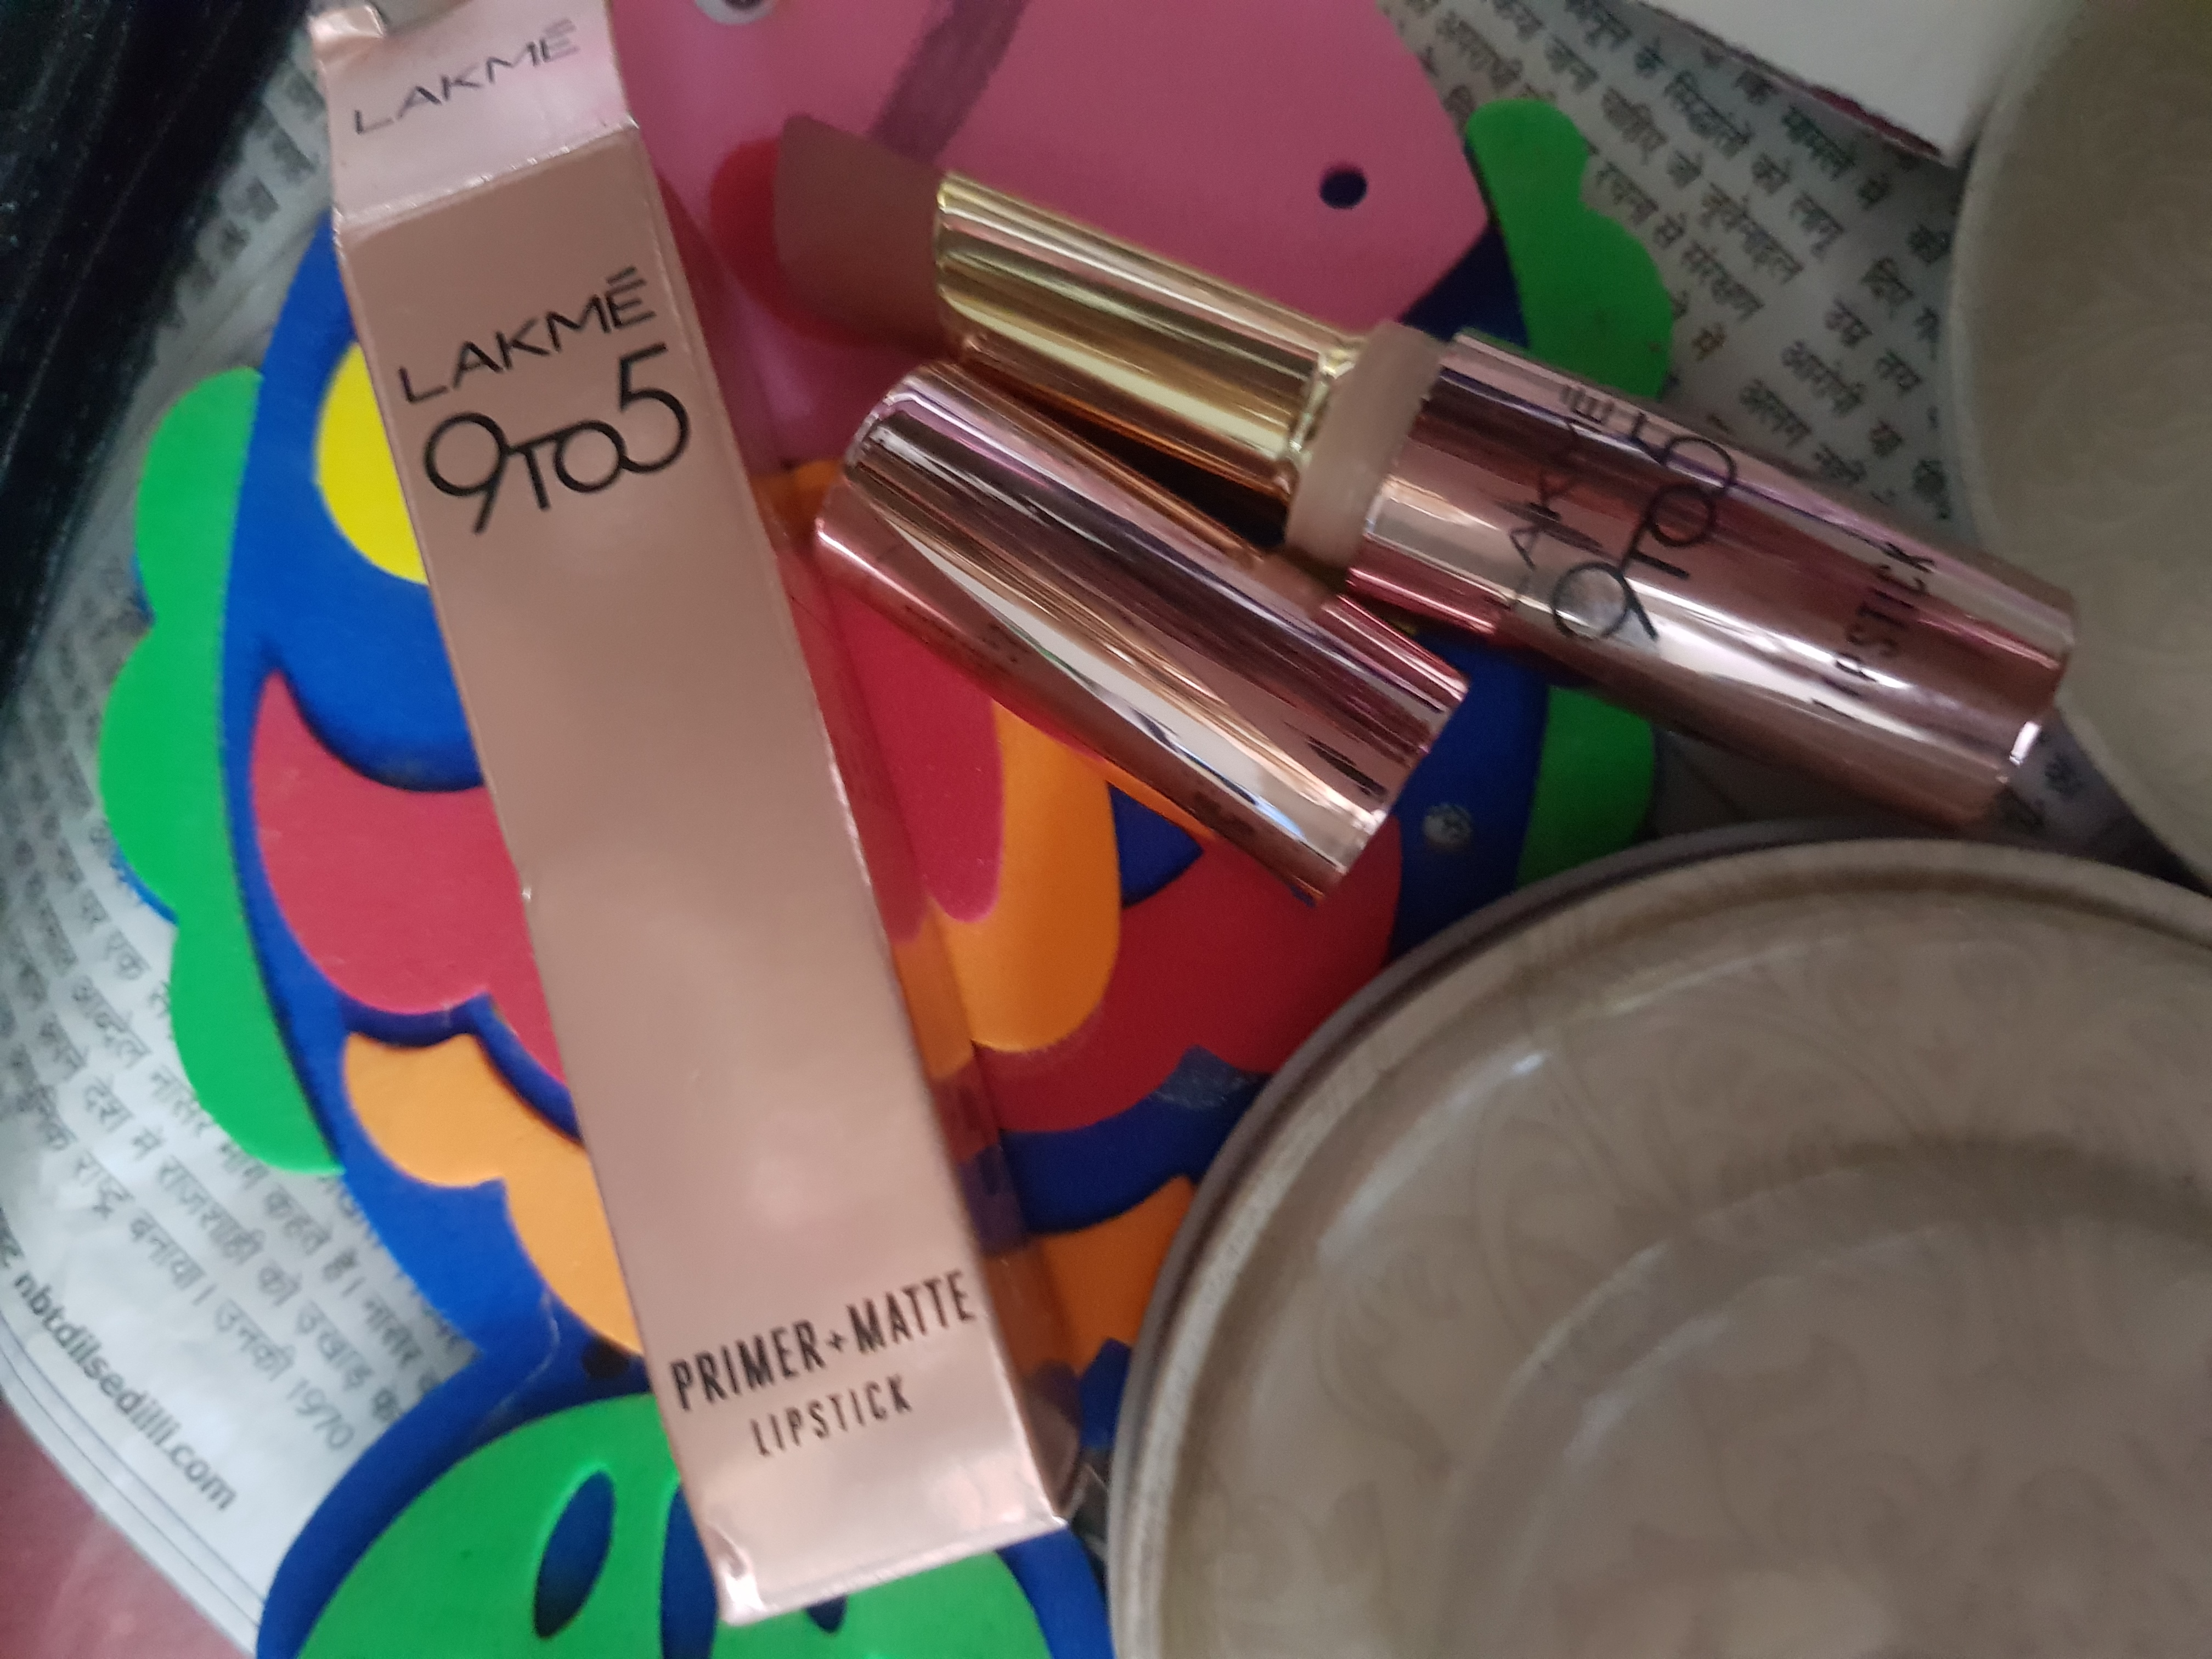 Lakme 9 To 5 Primer + Matte Lip Color-For perfect Lips!-By poonam_kakkar